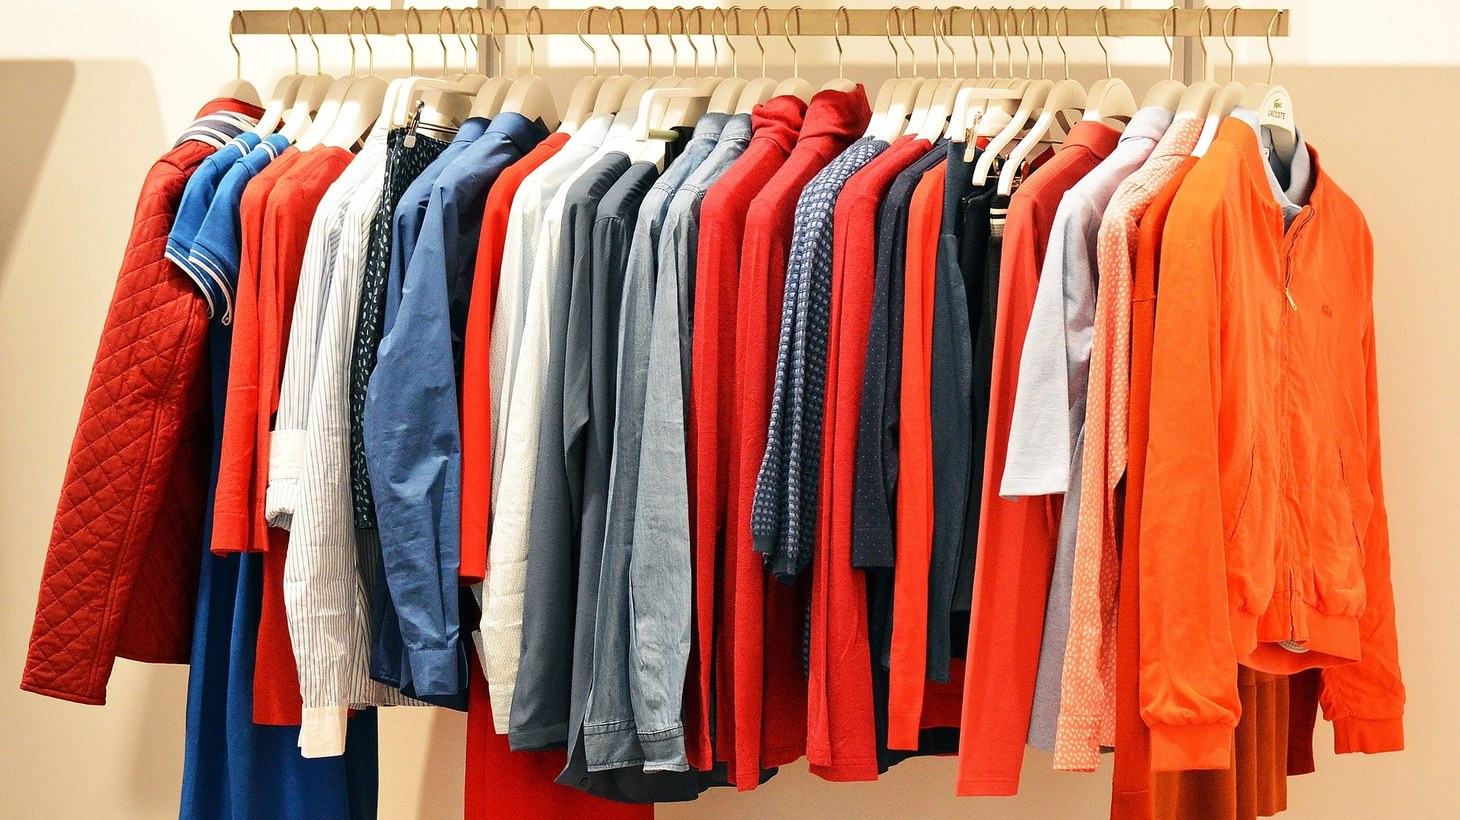 A rack of clothing.